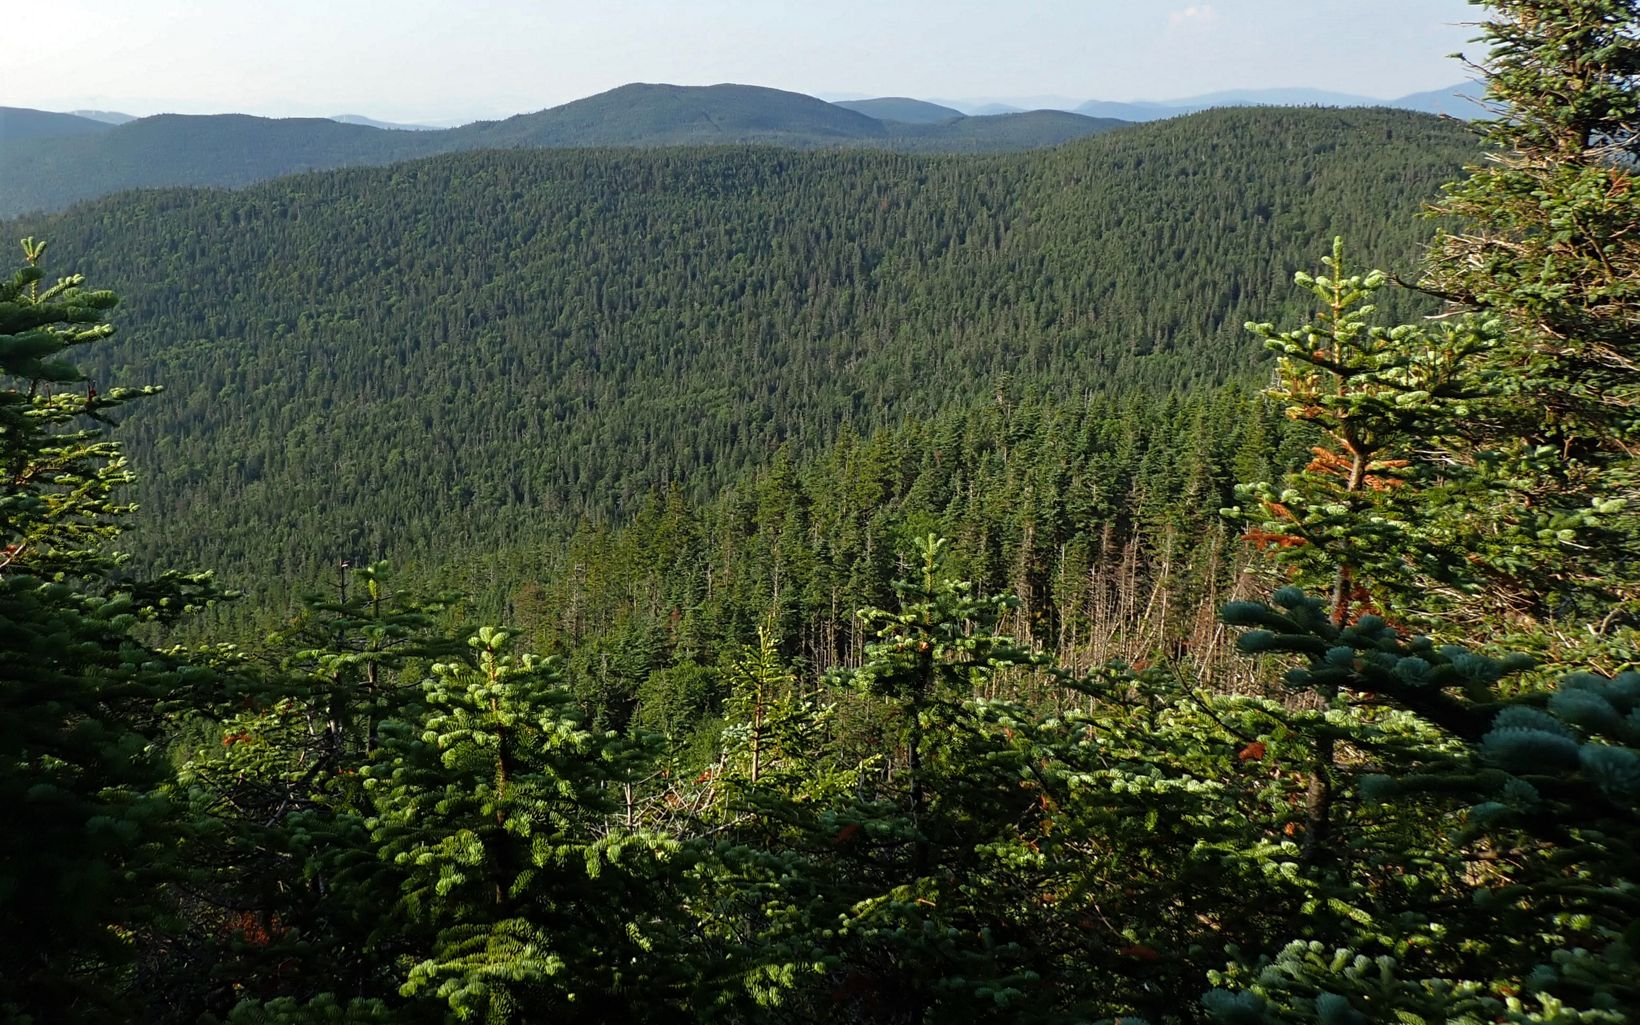 A view from Caribou Mountain in Boundary Mountains Preserve.